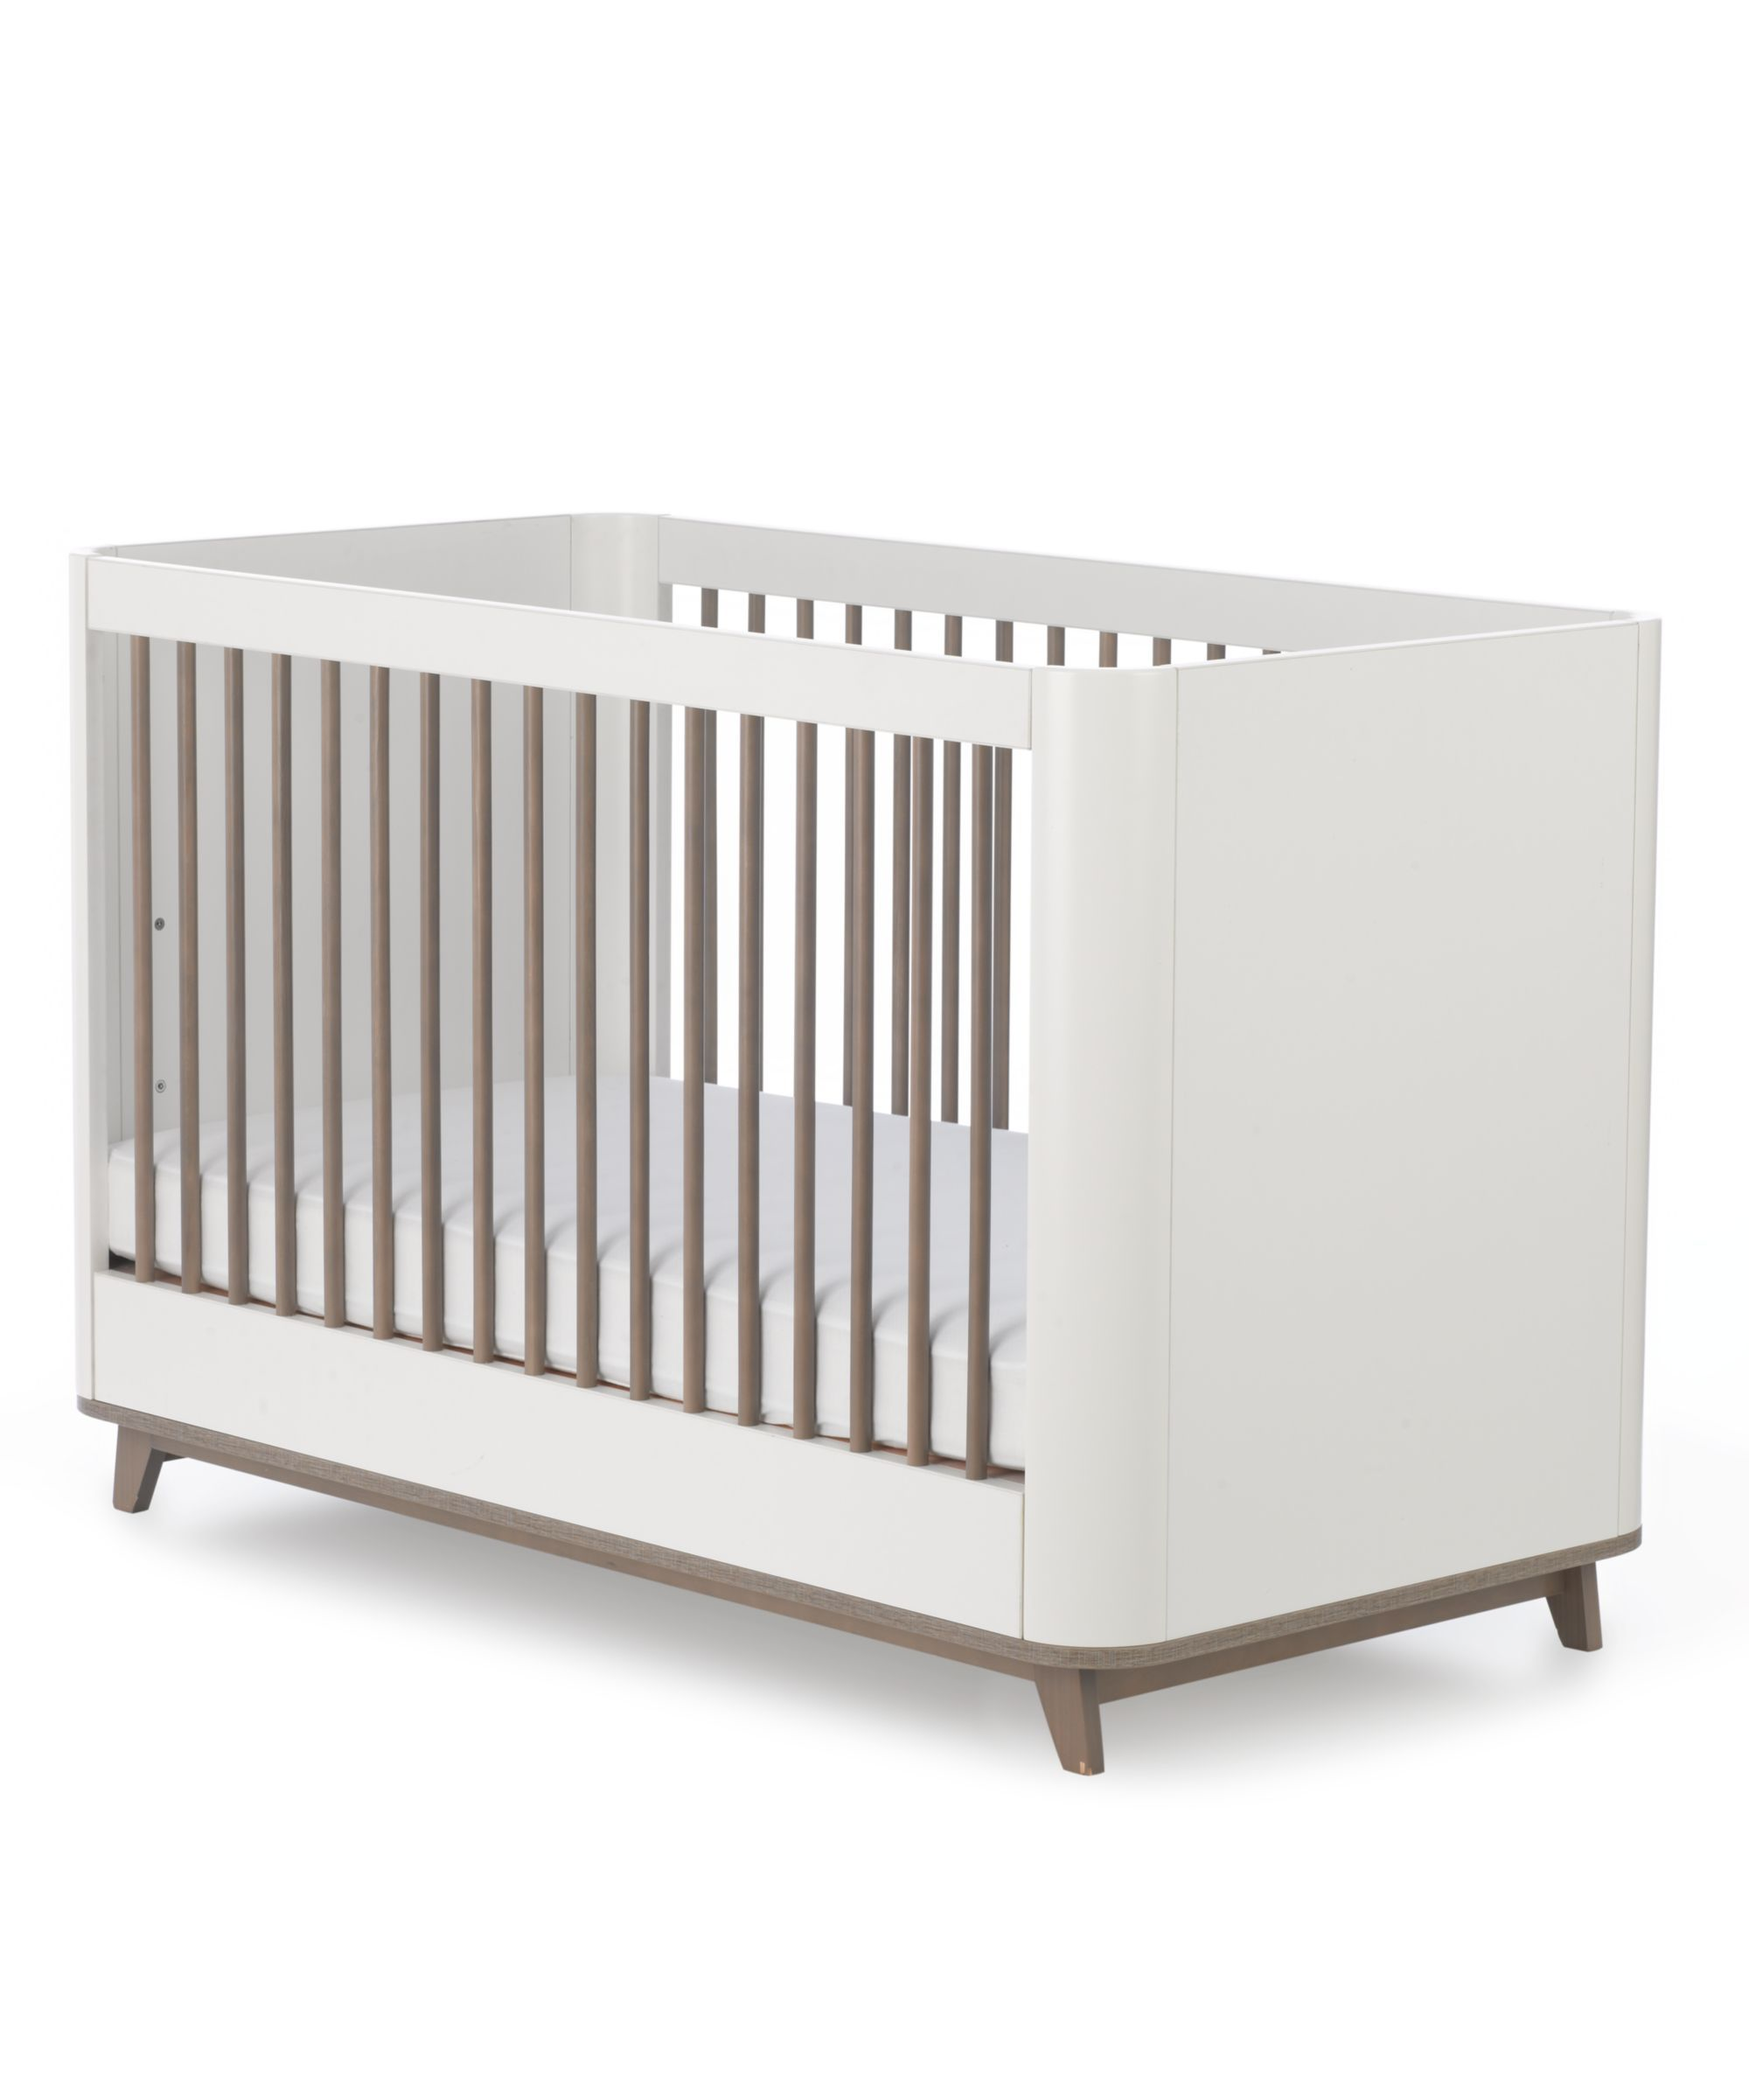 Mothercare Solna Cot Bed  Nursery furniture sets, Cot bedding